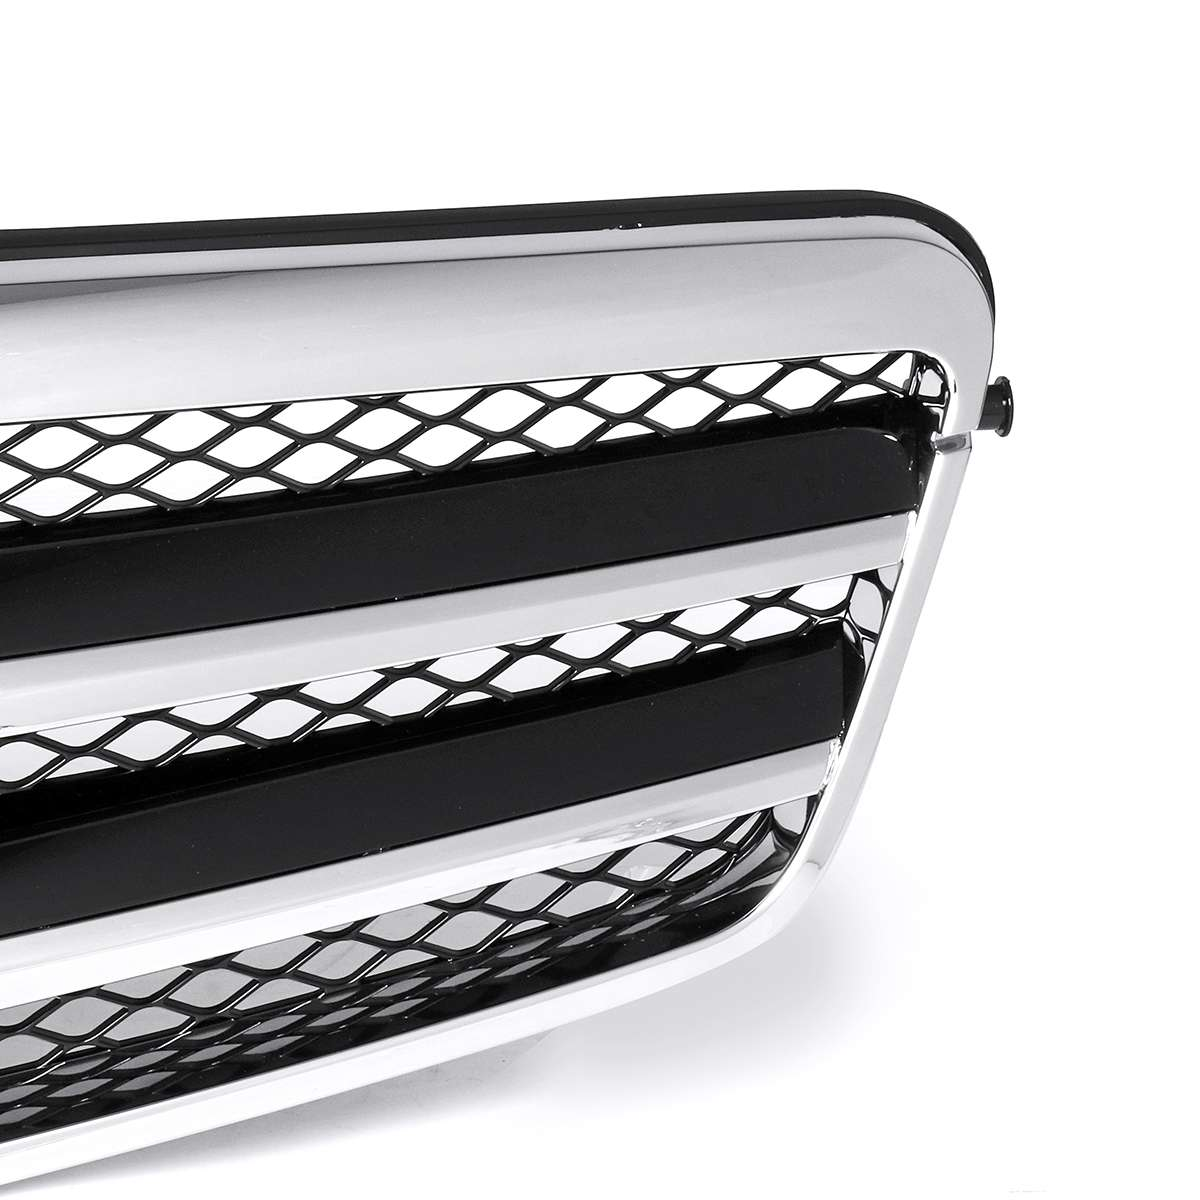 For AMG Style Car Front Grill Grille For Mercedes For Benz W212 E250 E550 E350 E63 For AMG 2010-2013 Racing Grills Sedan 4Dr